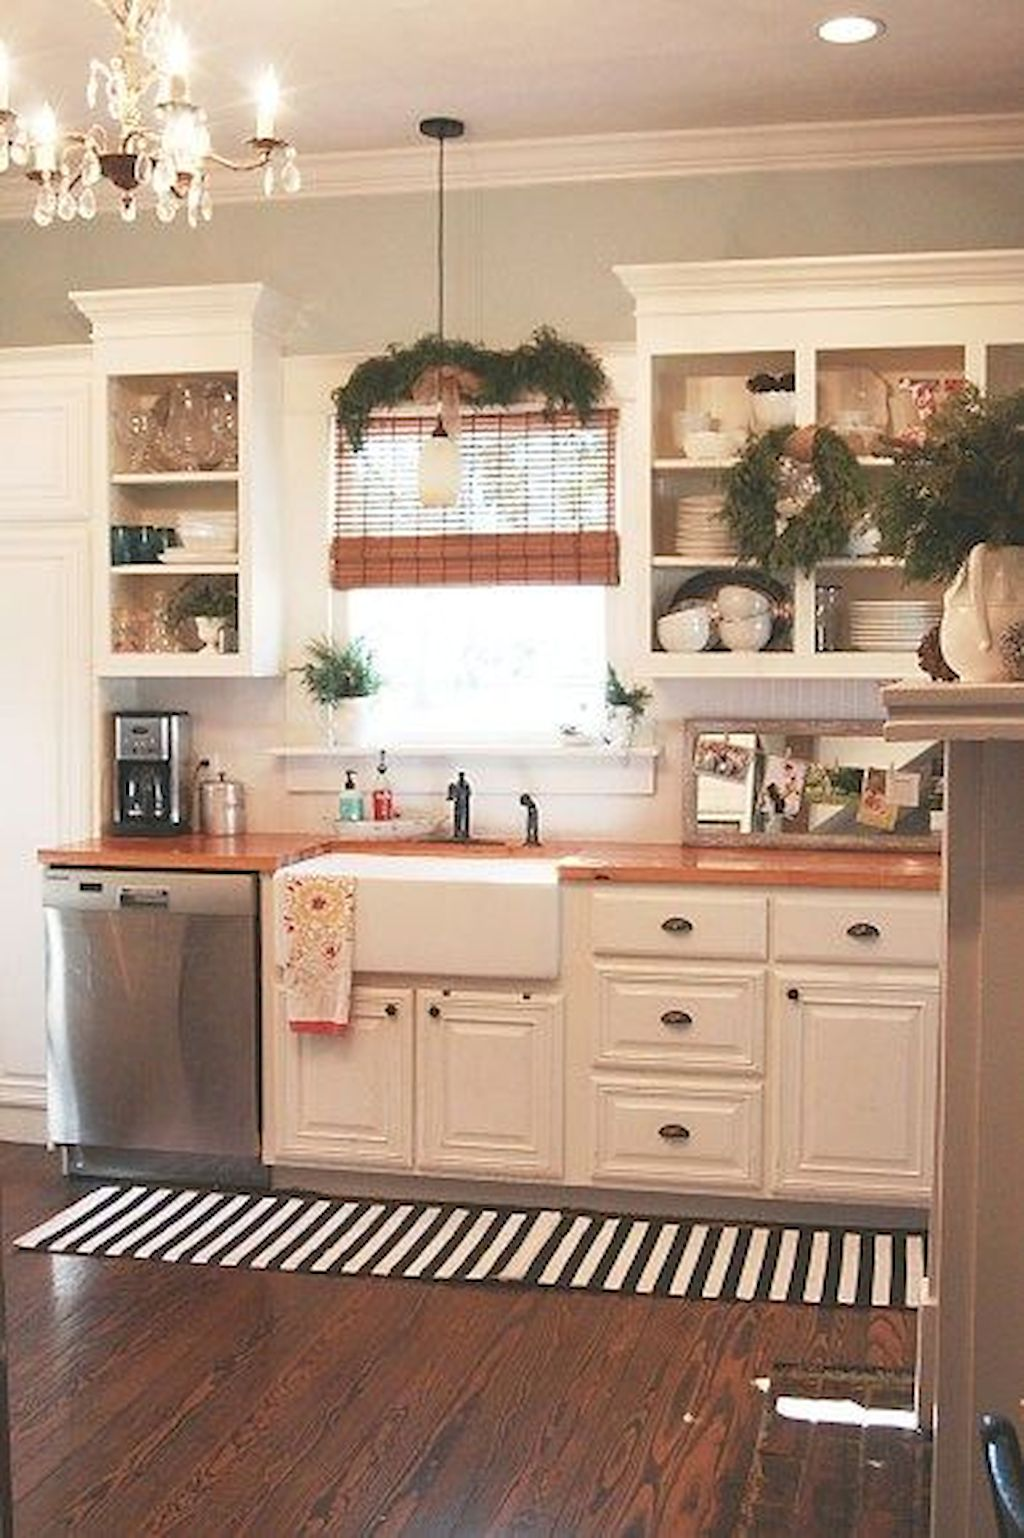 Kitchen Plan And Design For Small Room (29)